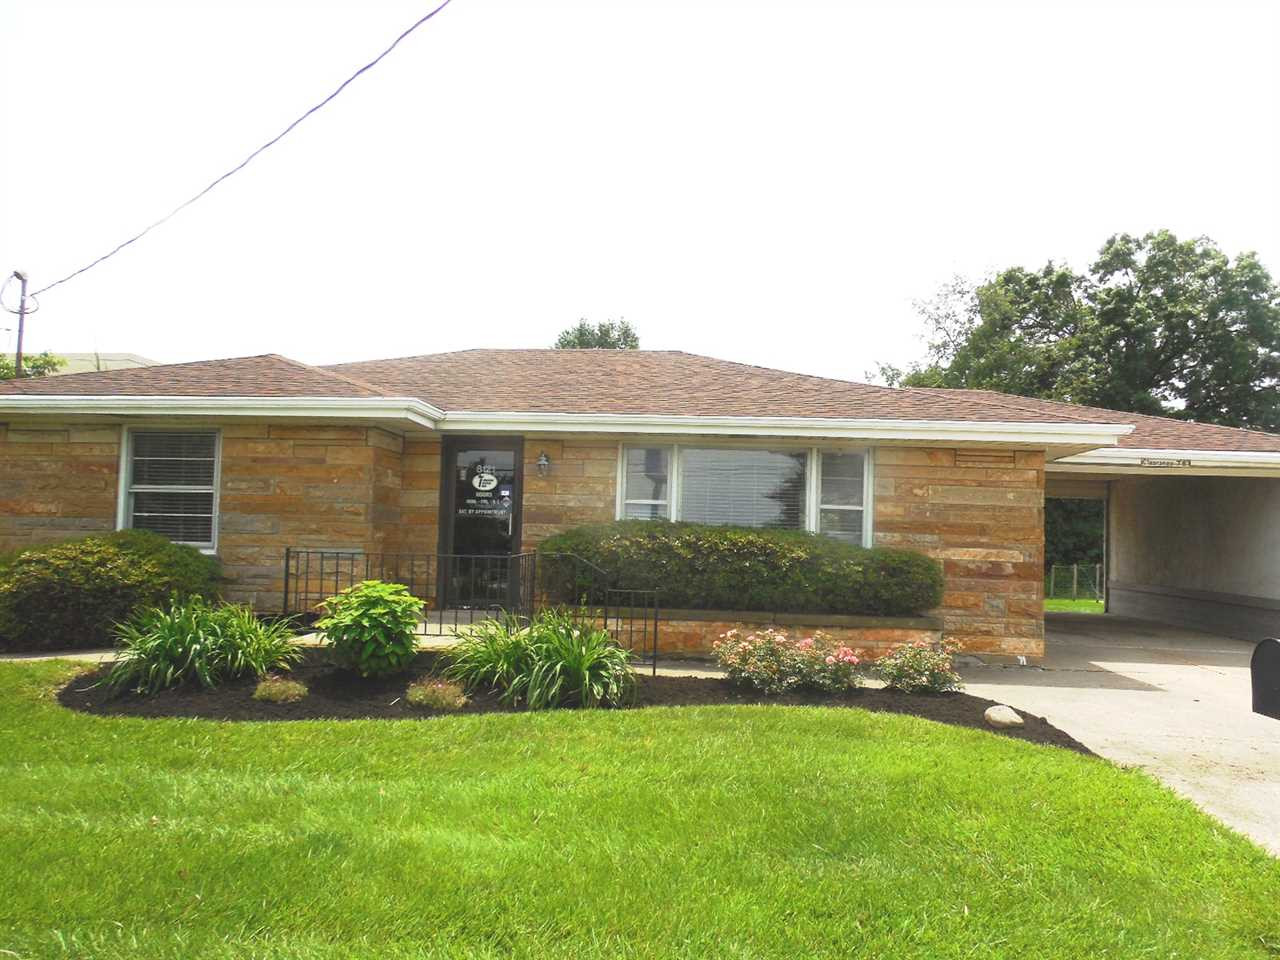 Photo 3 for 8121 US 42 Florence, KY 41042